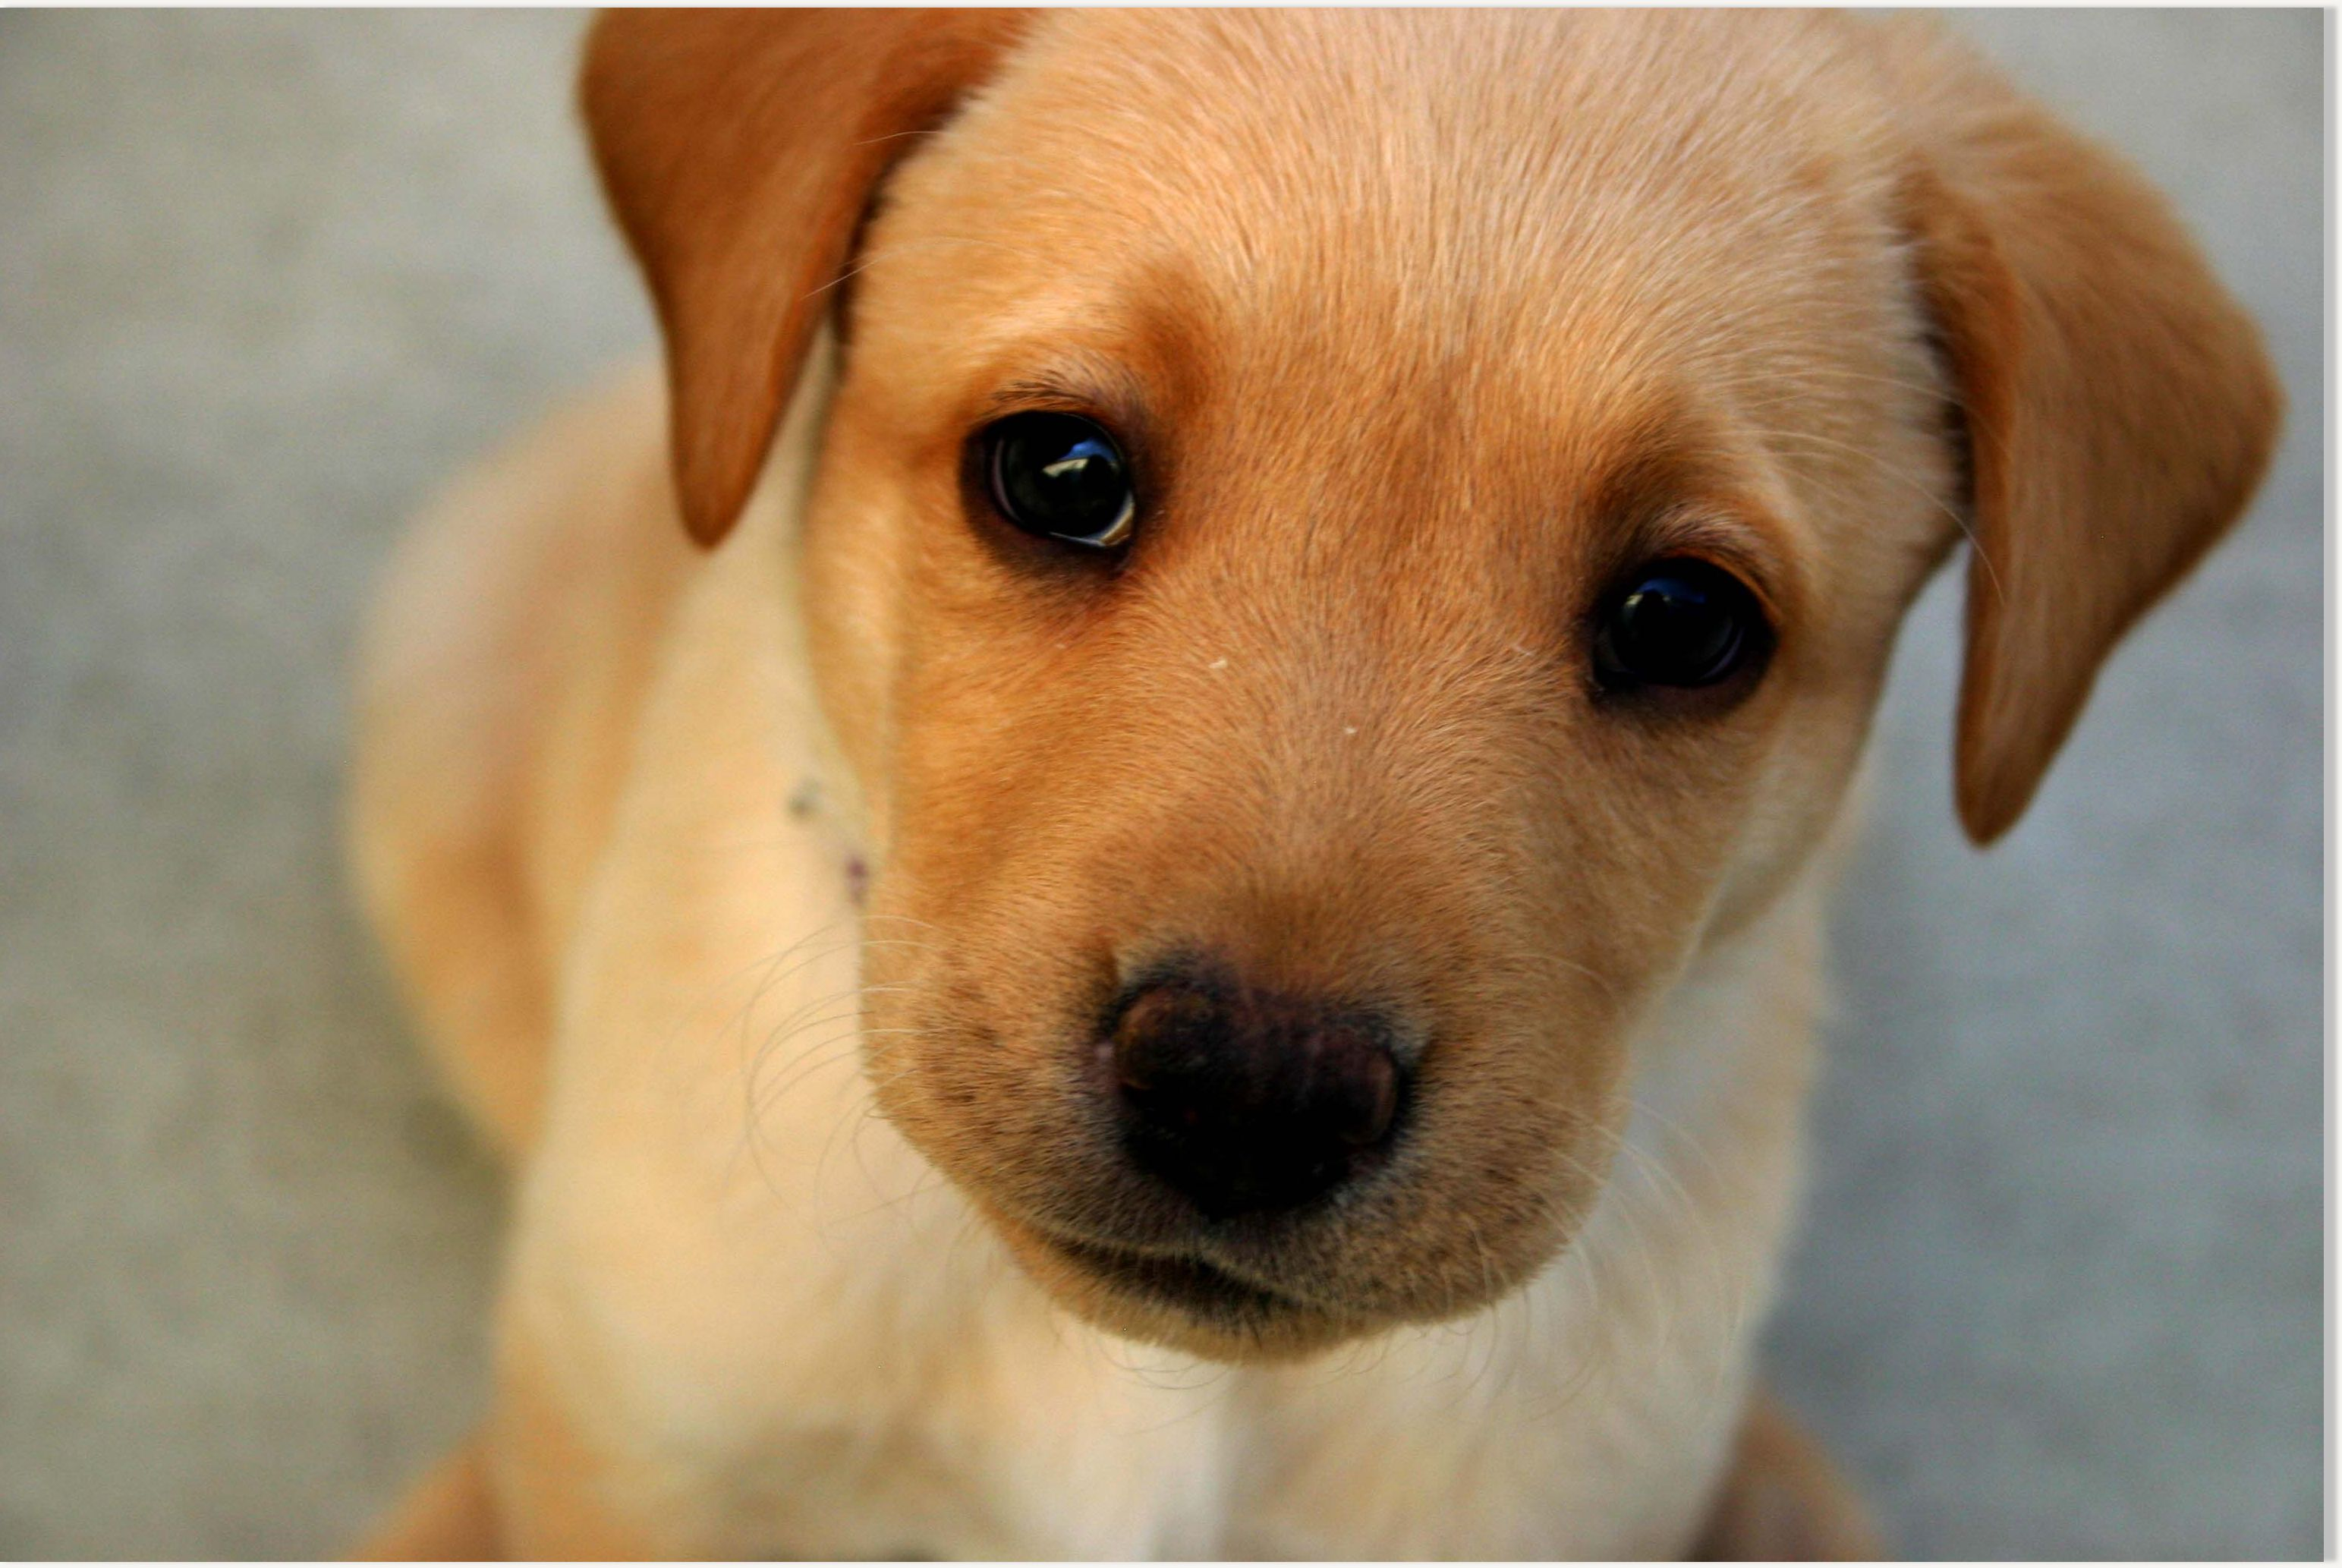 Dogs probably feel sorry for us science of the spirit for Pictures of cute dogs